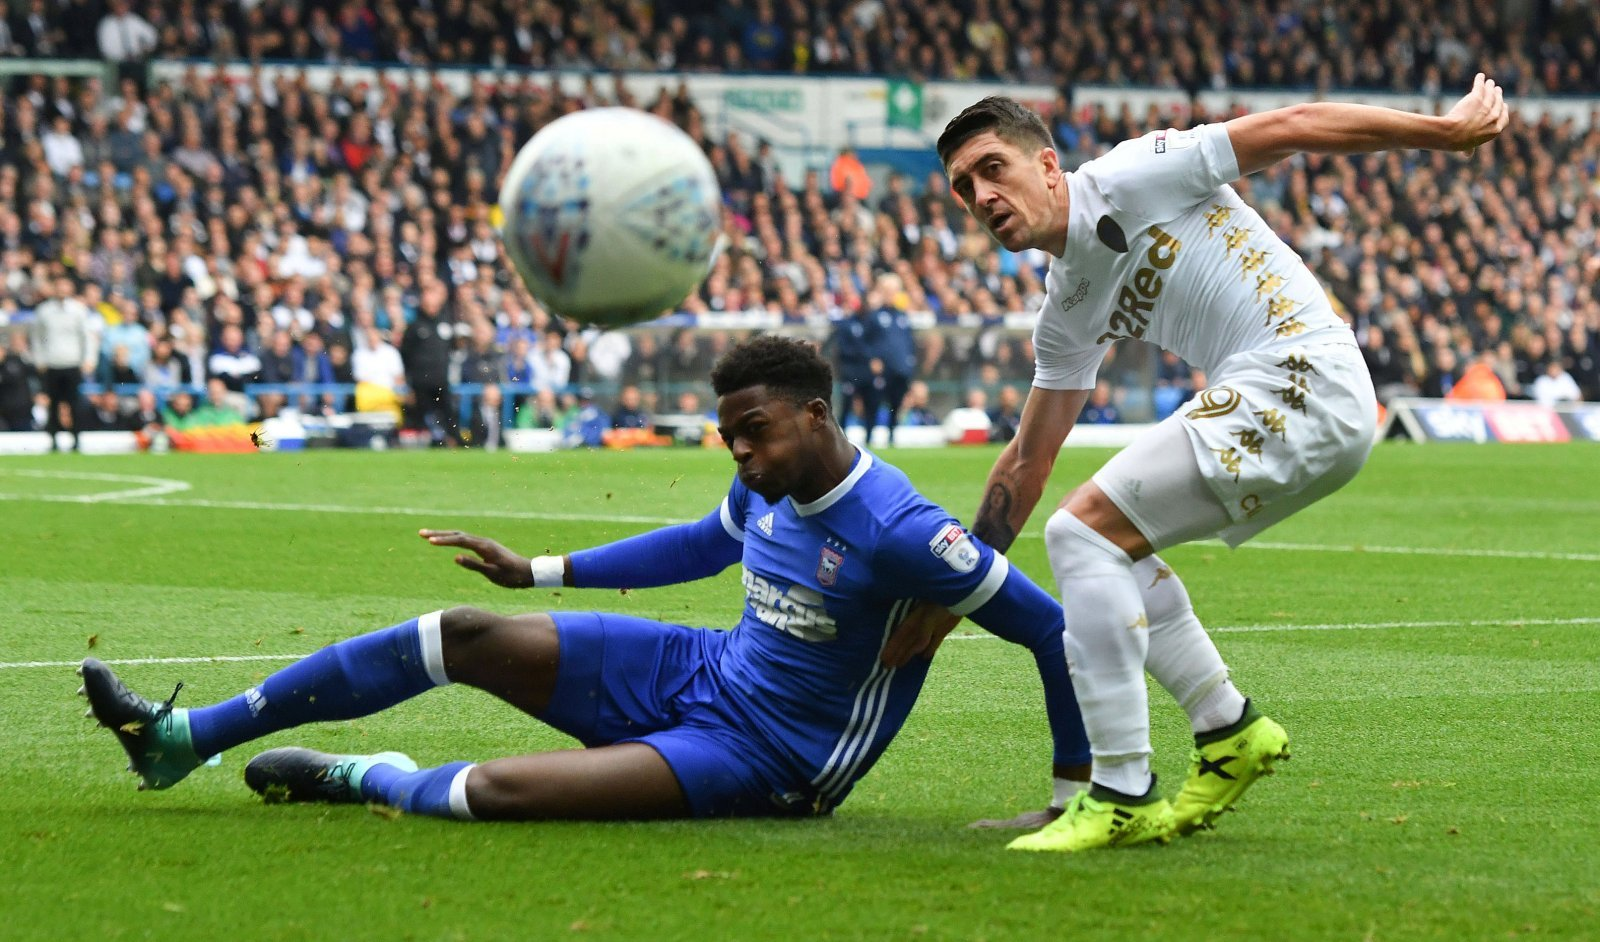 Aston Villa need defensive versatility which could be found in Dominic Iorfa